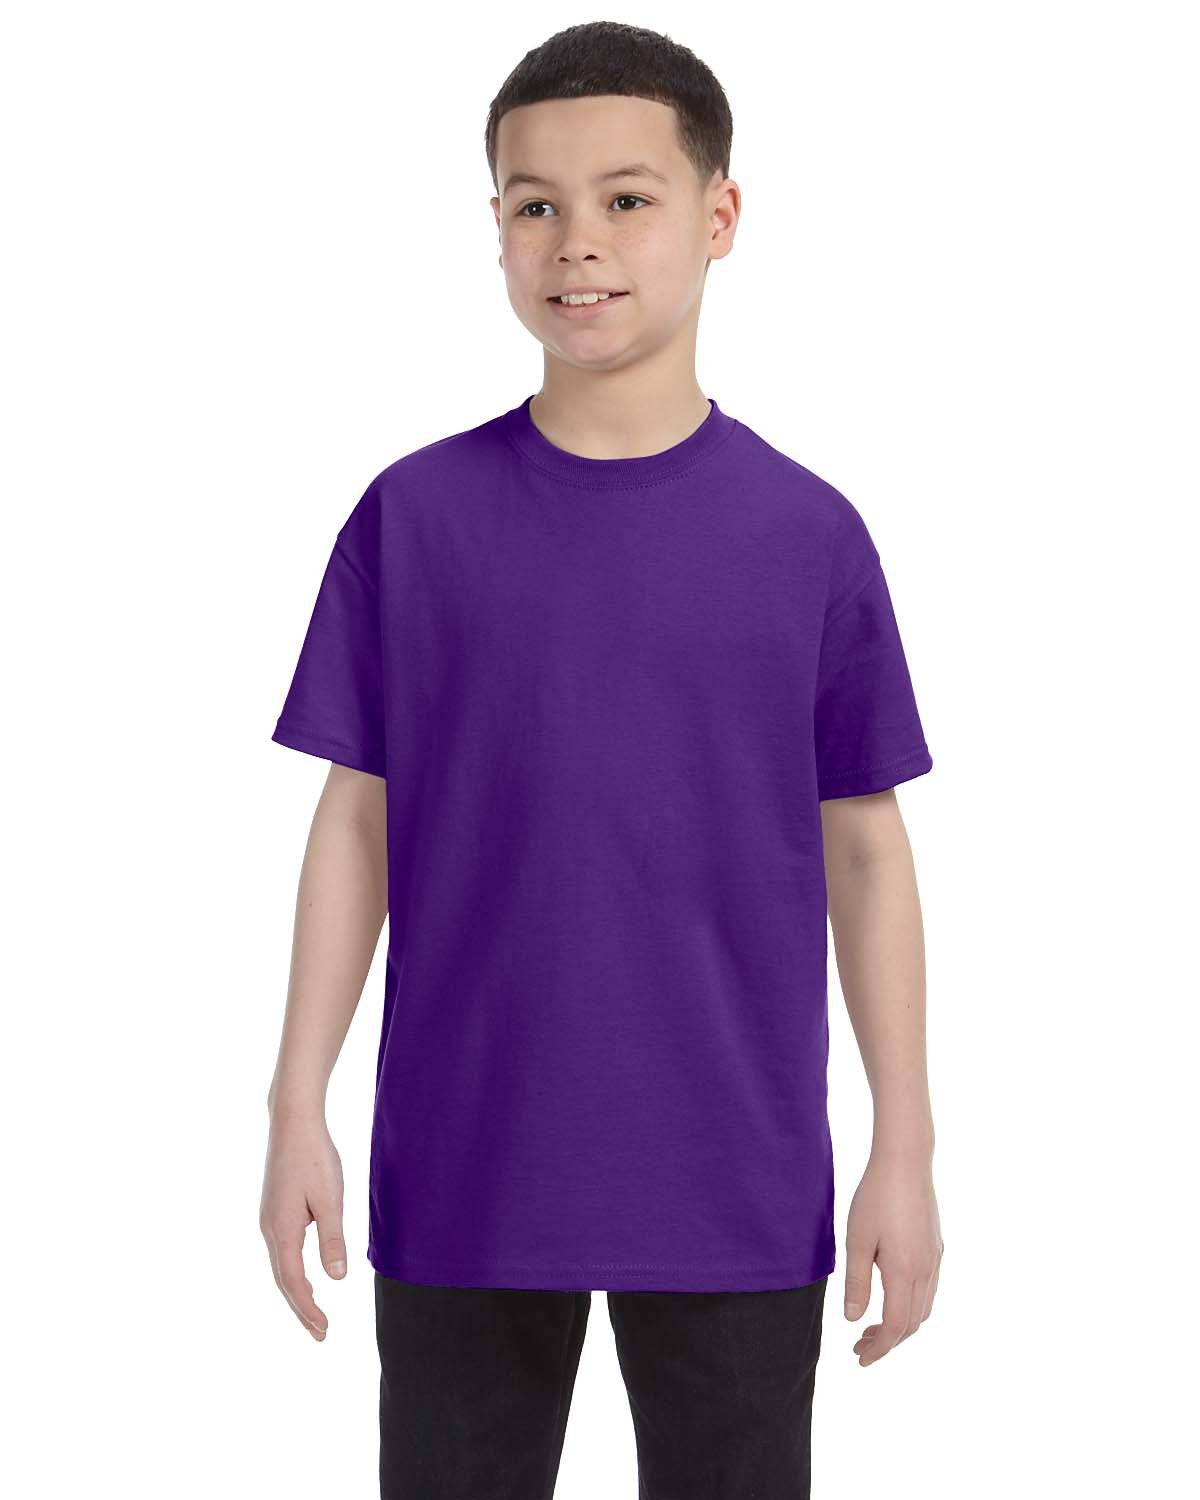 Hanes Youth Authentic-T T-Shirt PURPLE